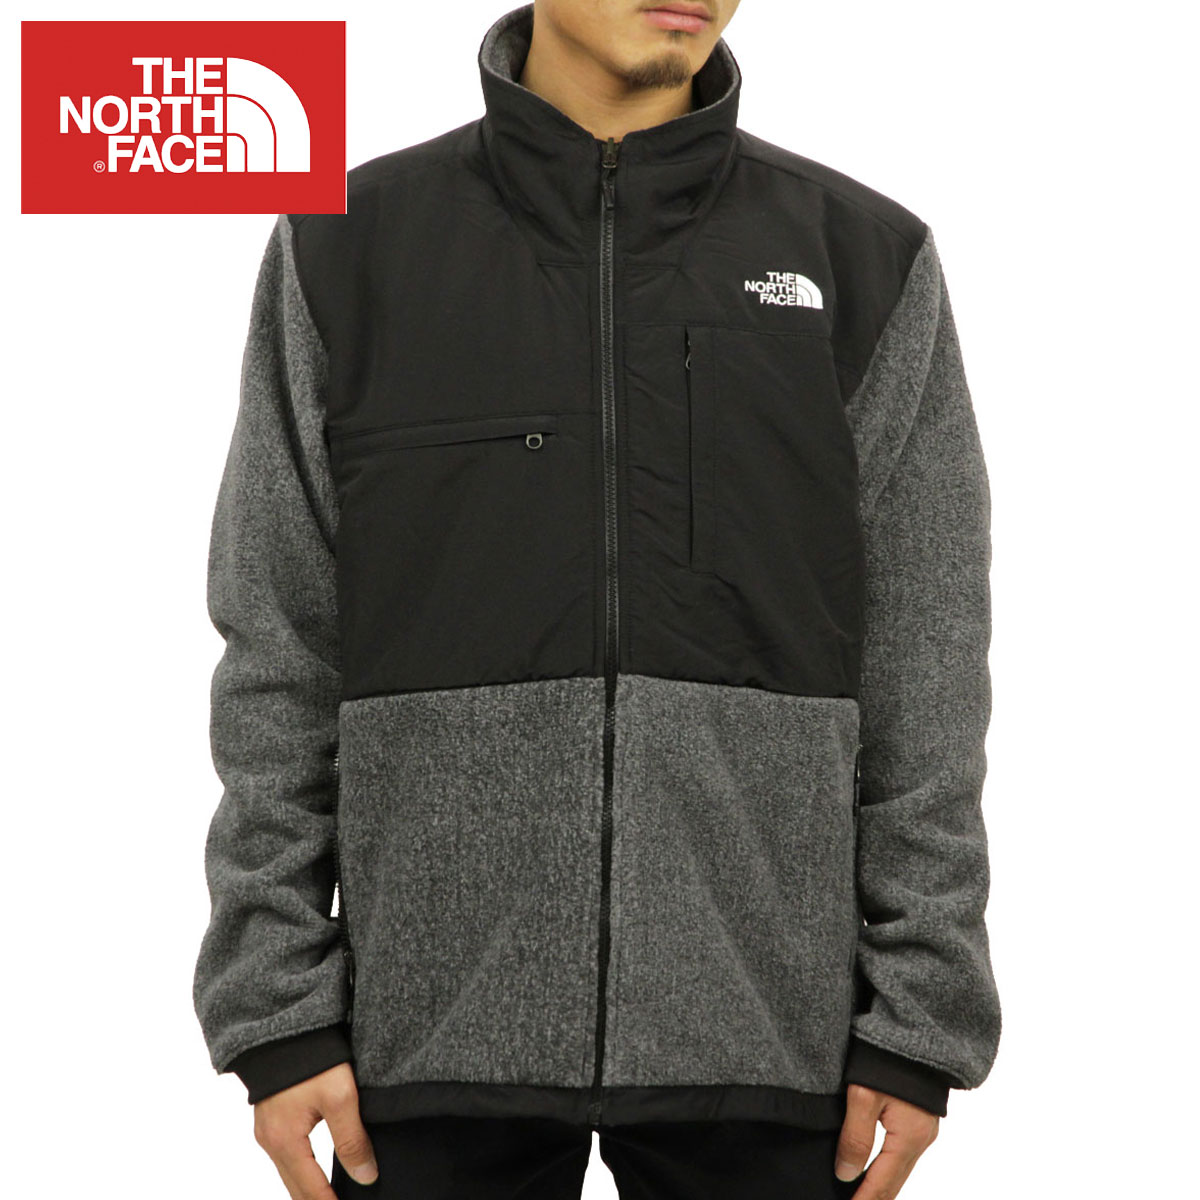 135edefd7 North Face THE NORTH FACE regular article men fleece jacket DENALI 2 FLEECE  JACKET RECYCLED CHARCOAL GREY HEATHER / TNF BLACK NF0A2RDK MA9